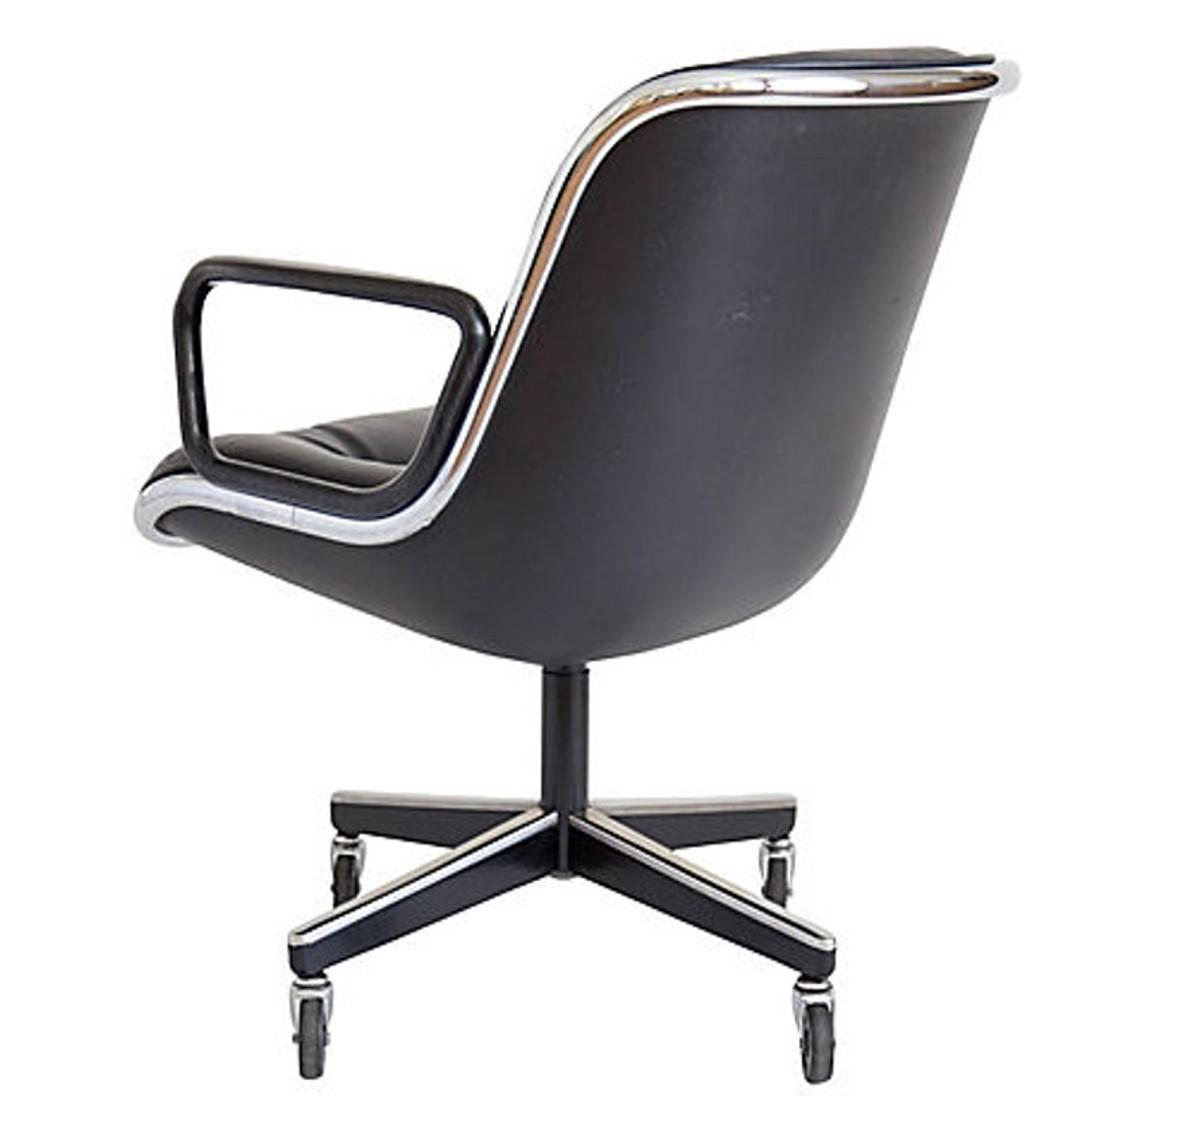 Charles Pollock Executive Chair By Knoll   Image 2 Of 10